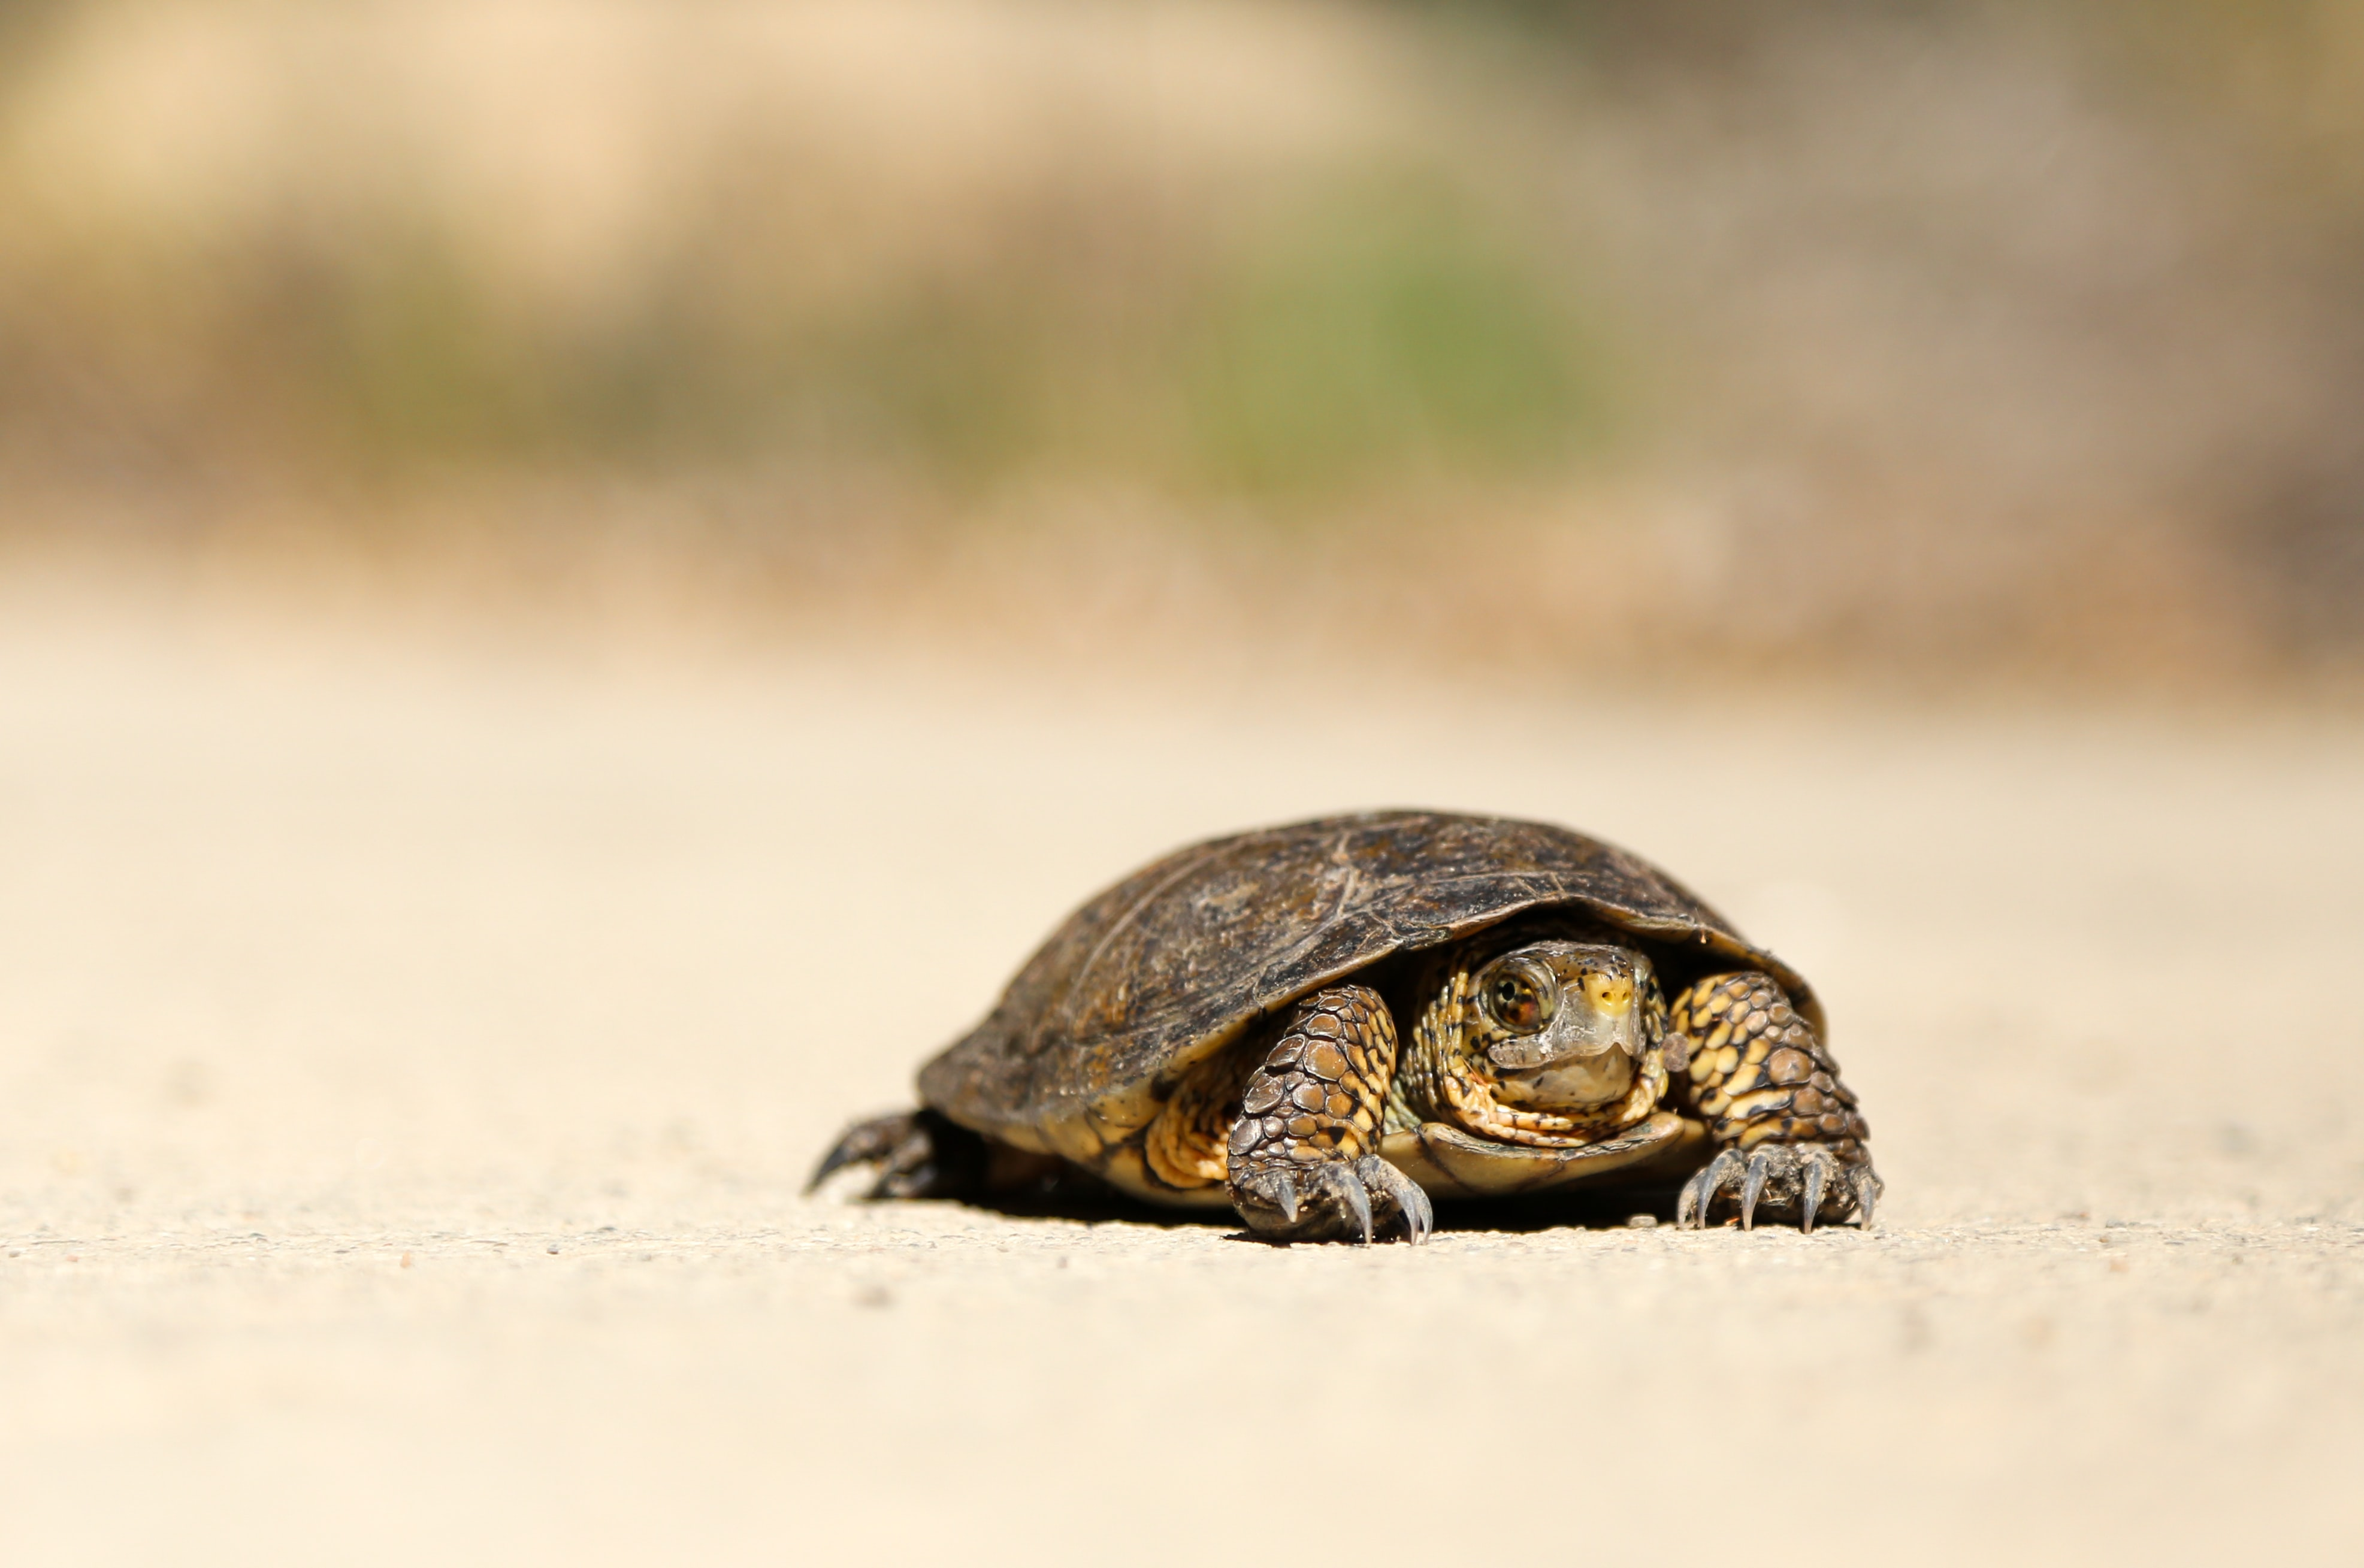 A small turtle sitting on the sandy beach in Santa Barbara